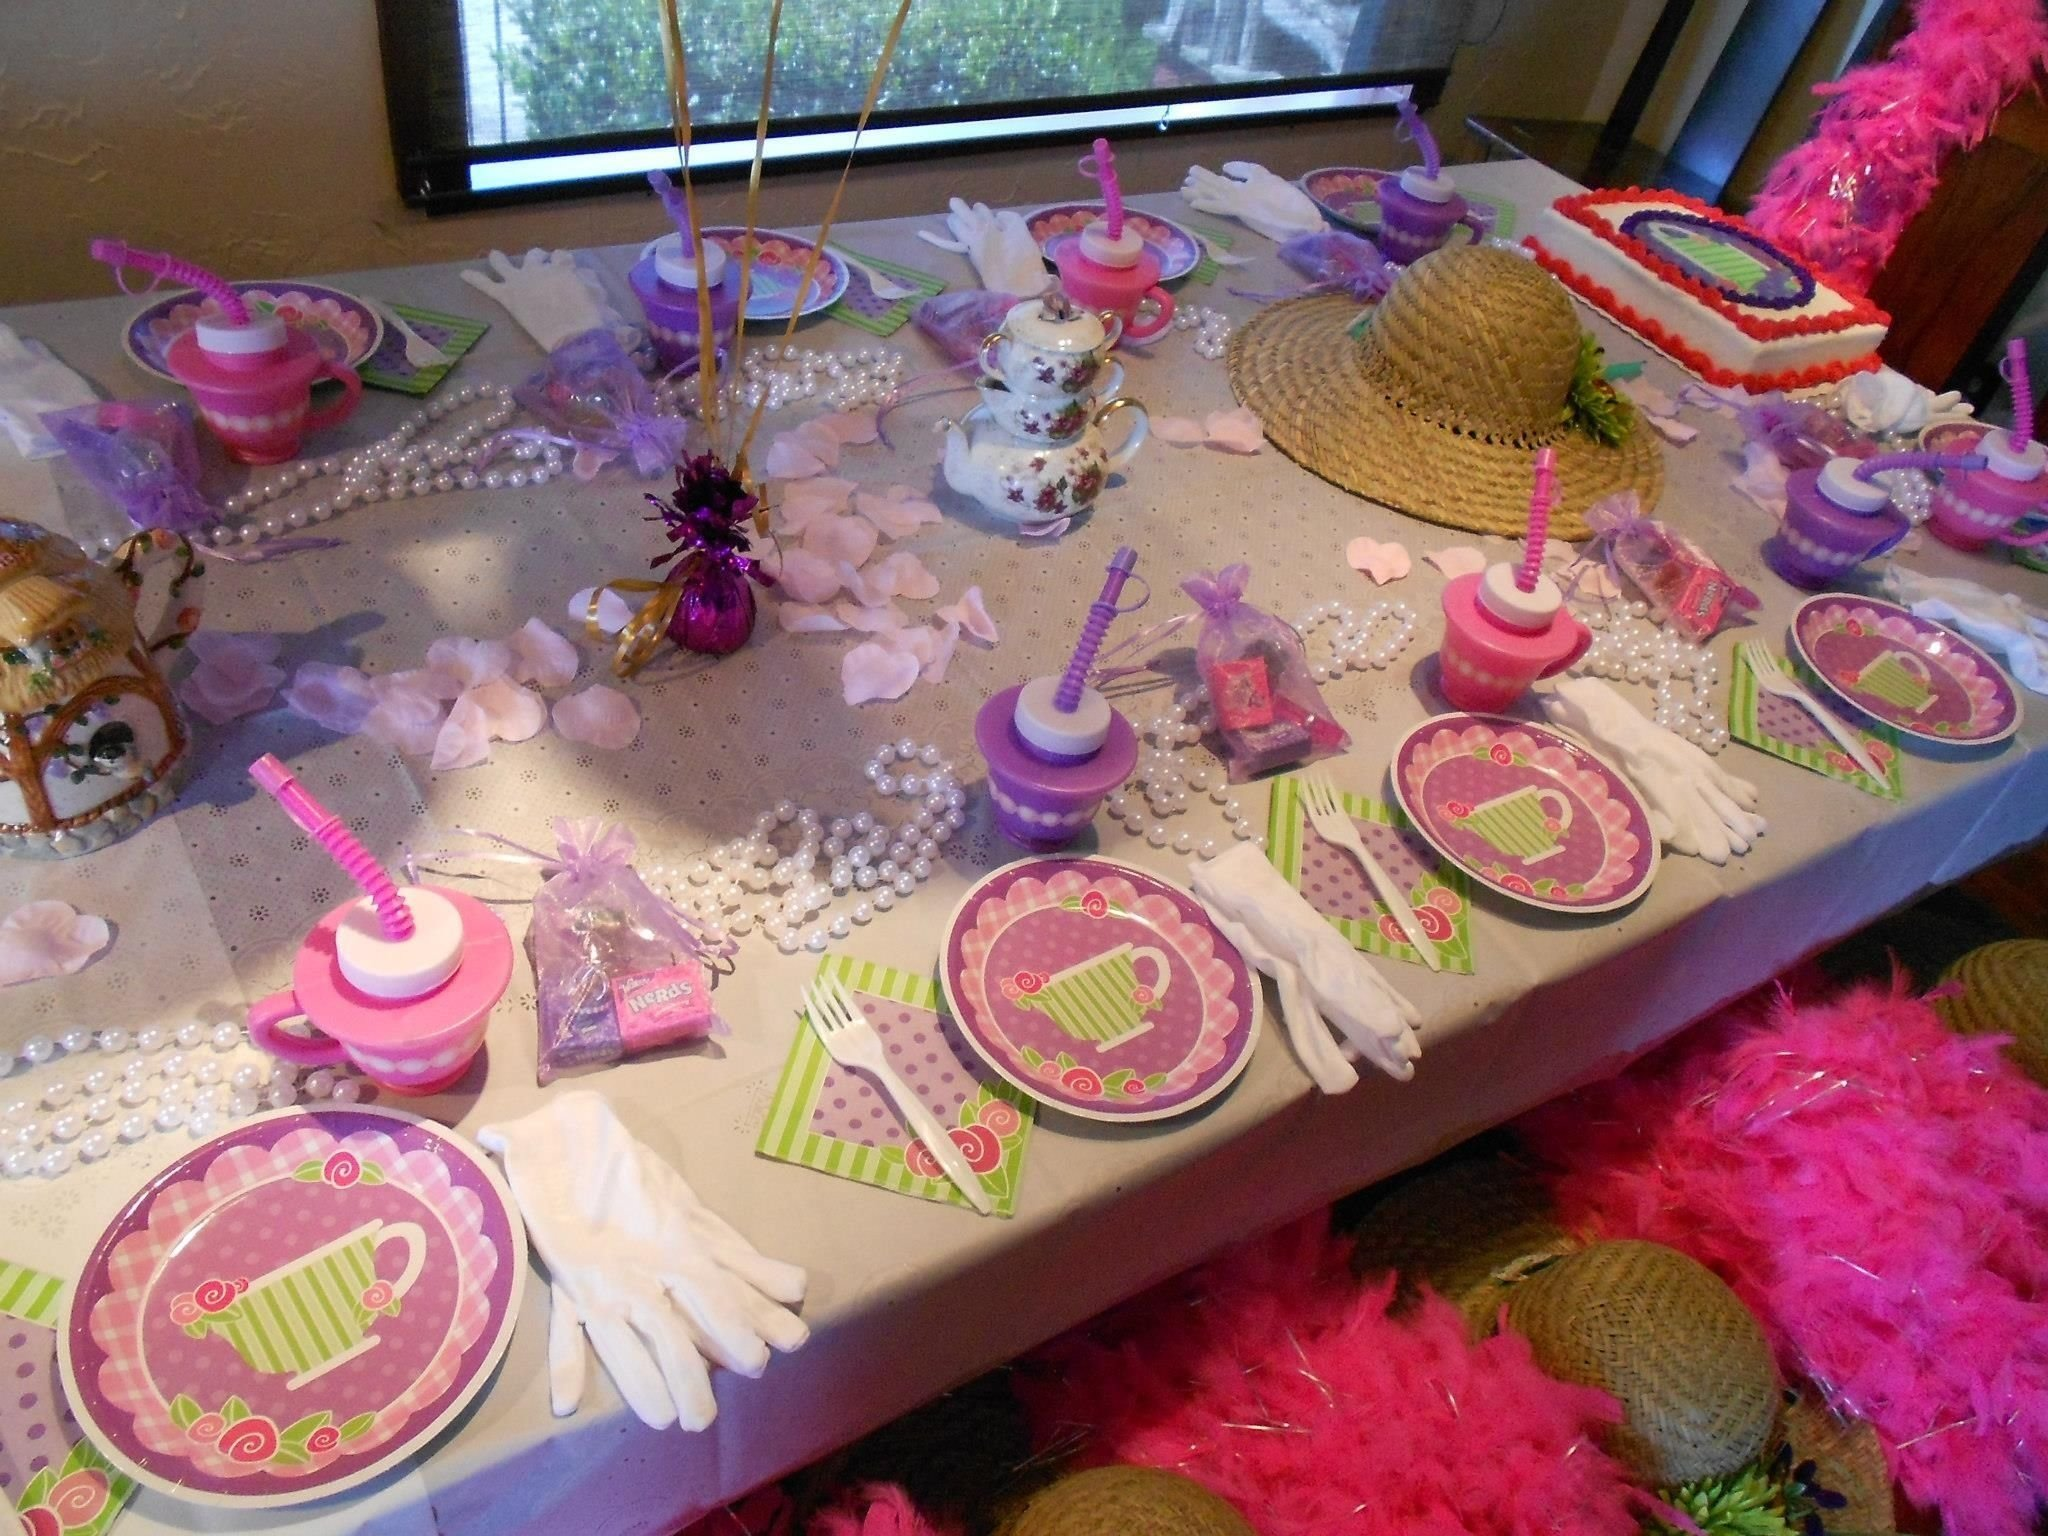 10 Spectacular Dress Up Birthday Party Ideas shocking ultimate themed dress up tea party little u birthday pics 2020